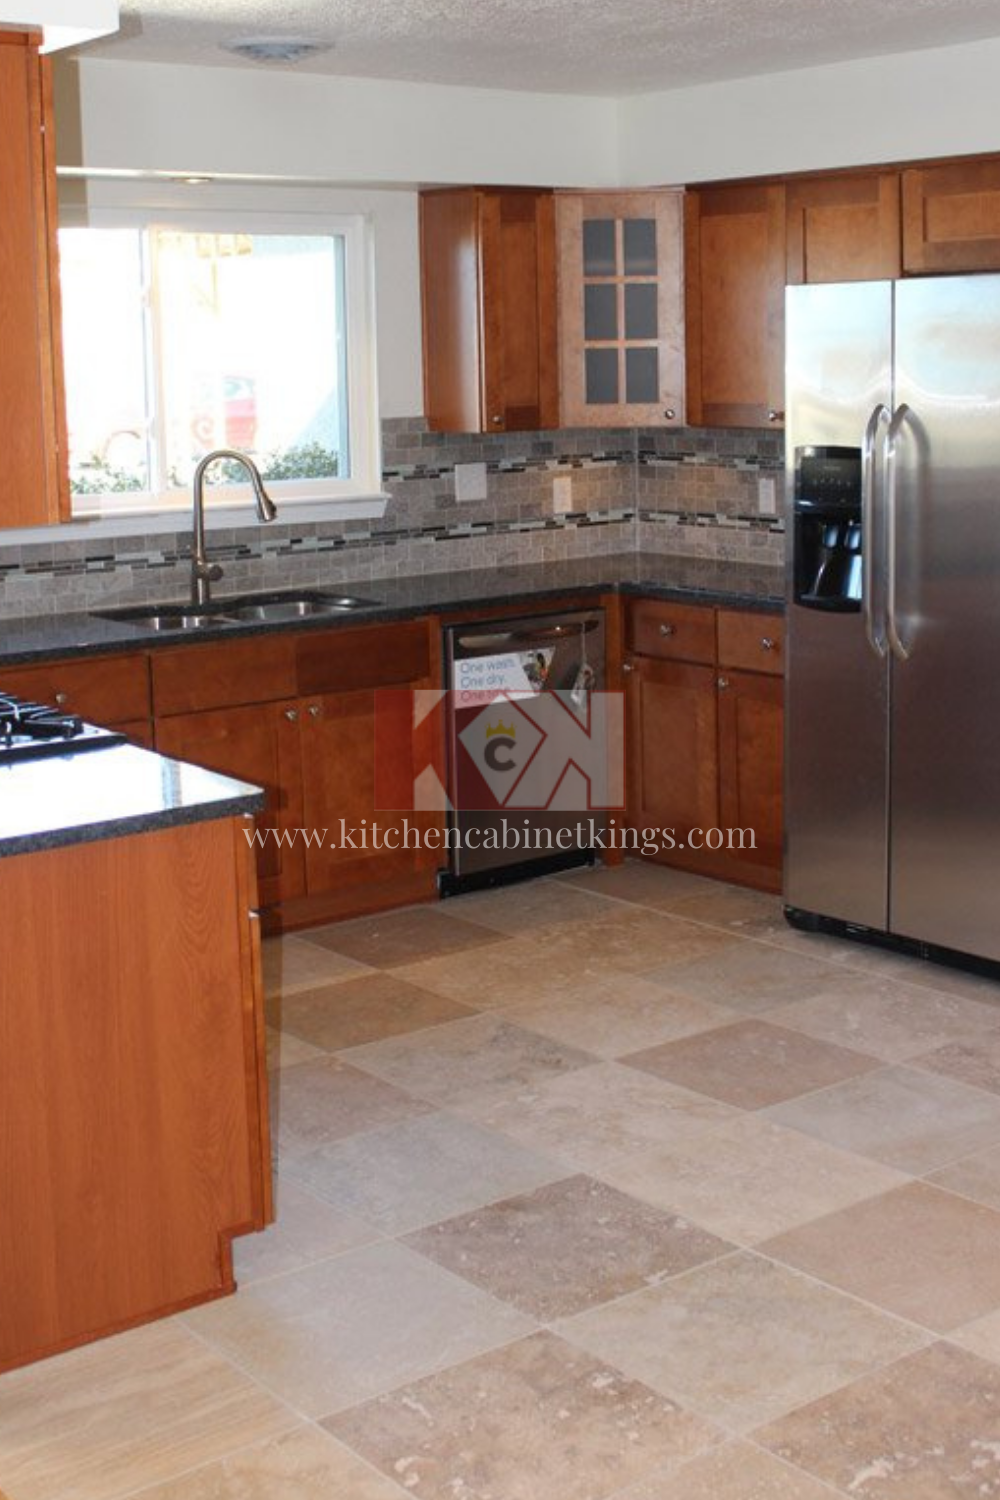 Shop Rta Kitchen Cabinets For Low Costs Online Kitchen Cabinets Assembled Kitchen Cabinets Rta Kitchen Cabinets